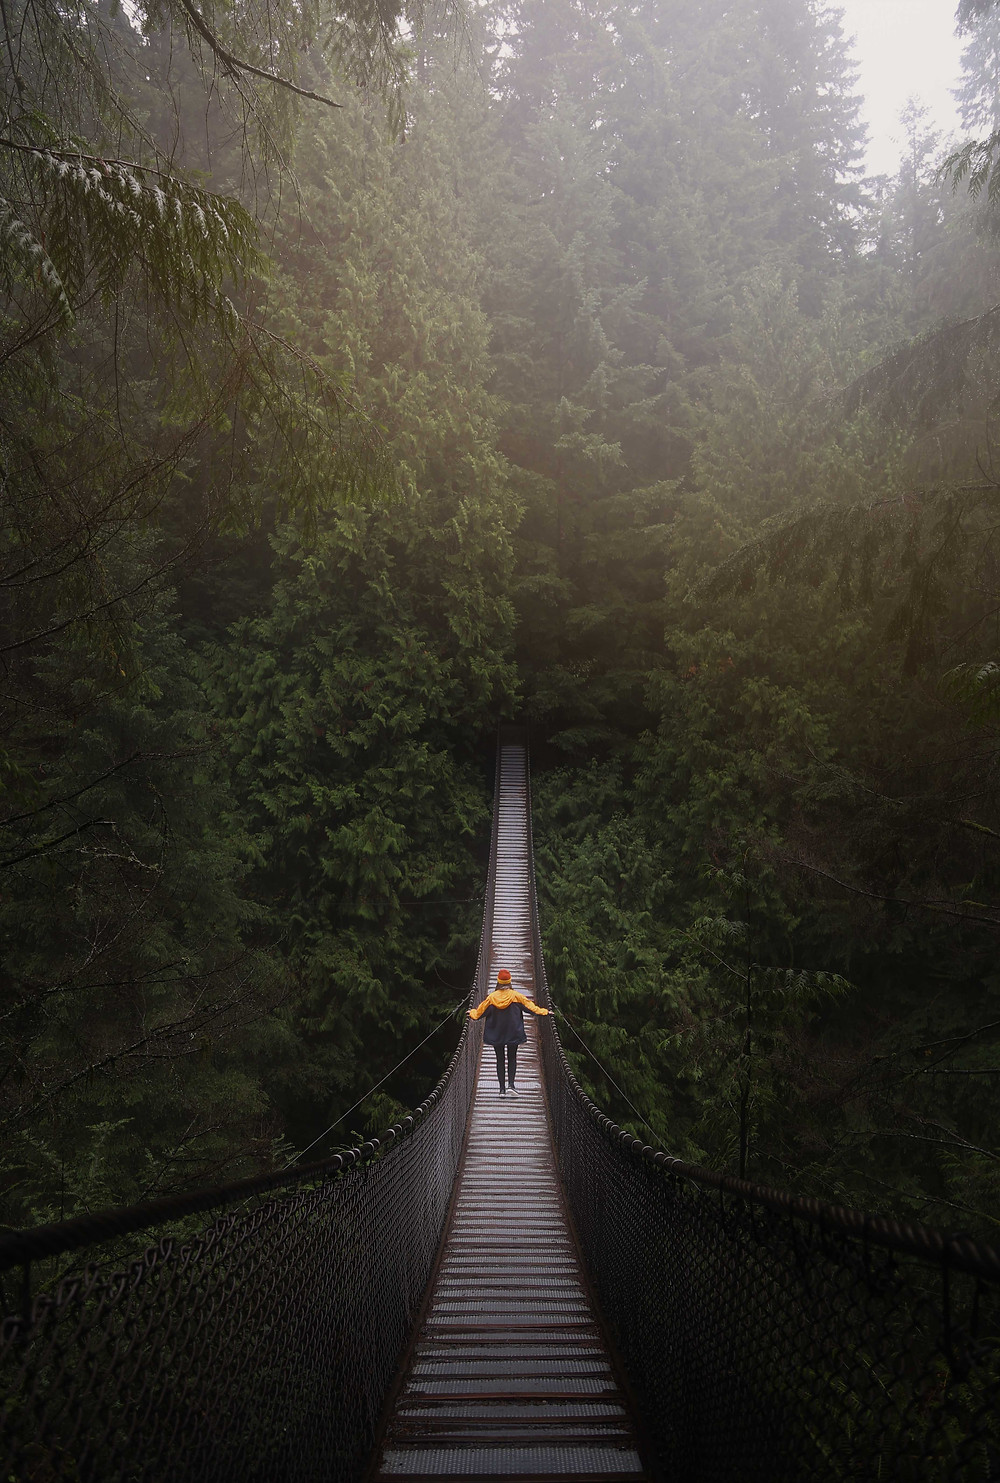 A person in yellow coat crosses suspended wooden footbridge through wet piney forest